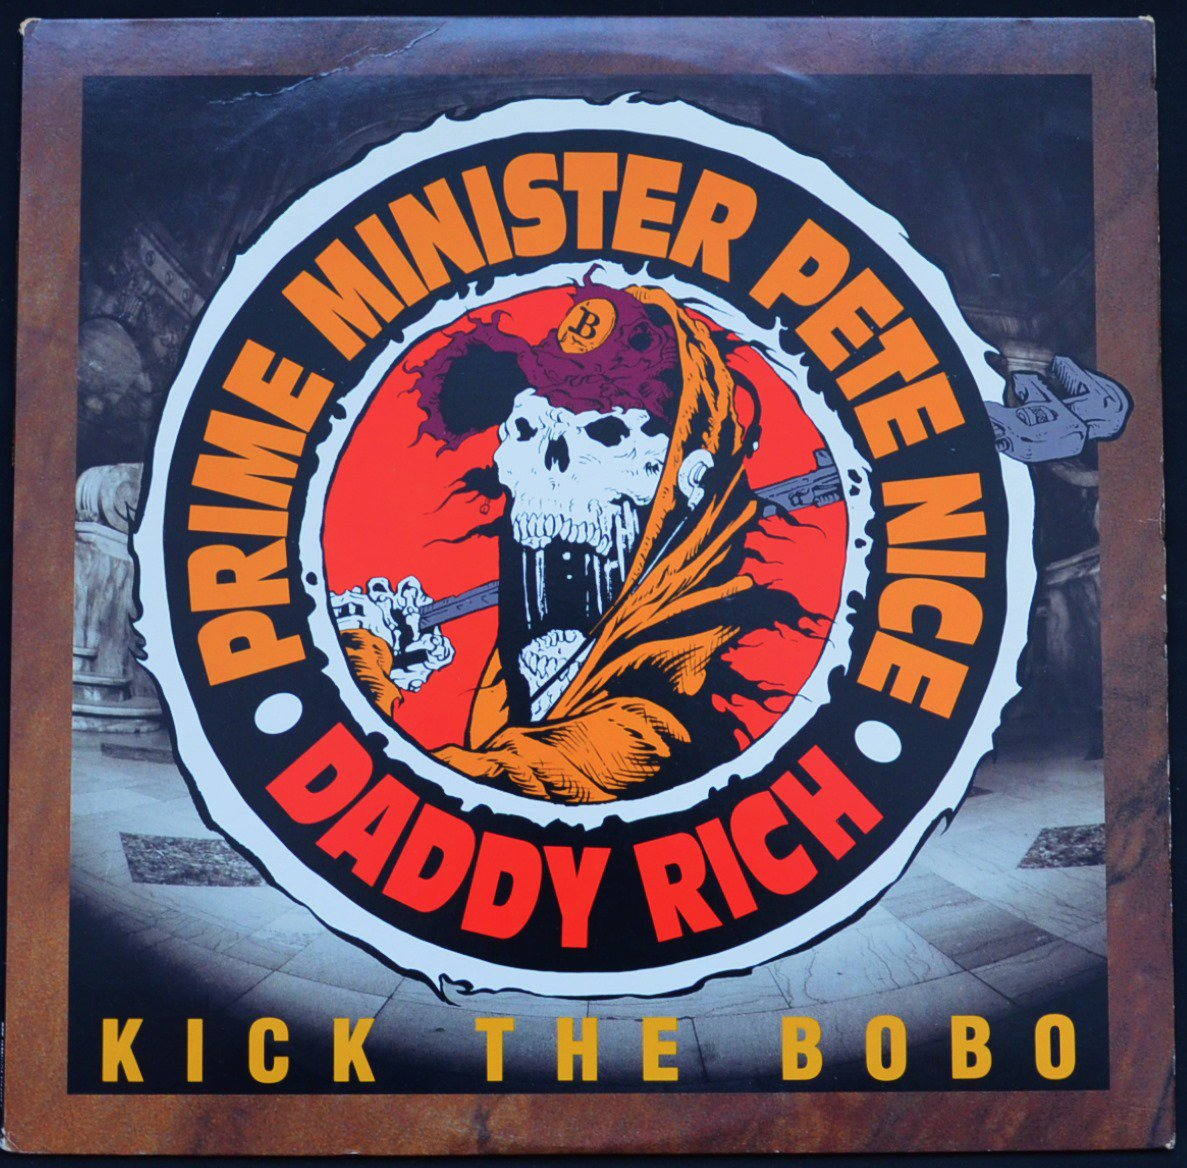 PRIME MINISTER PETE NICE & DADDY RICH ‎/ KICK THE BOBO / VERBAL MASSAGE (PART II) (12